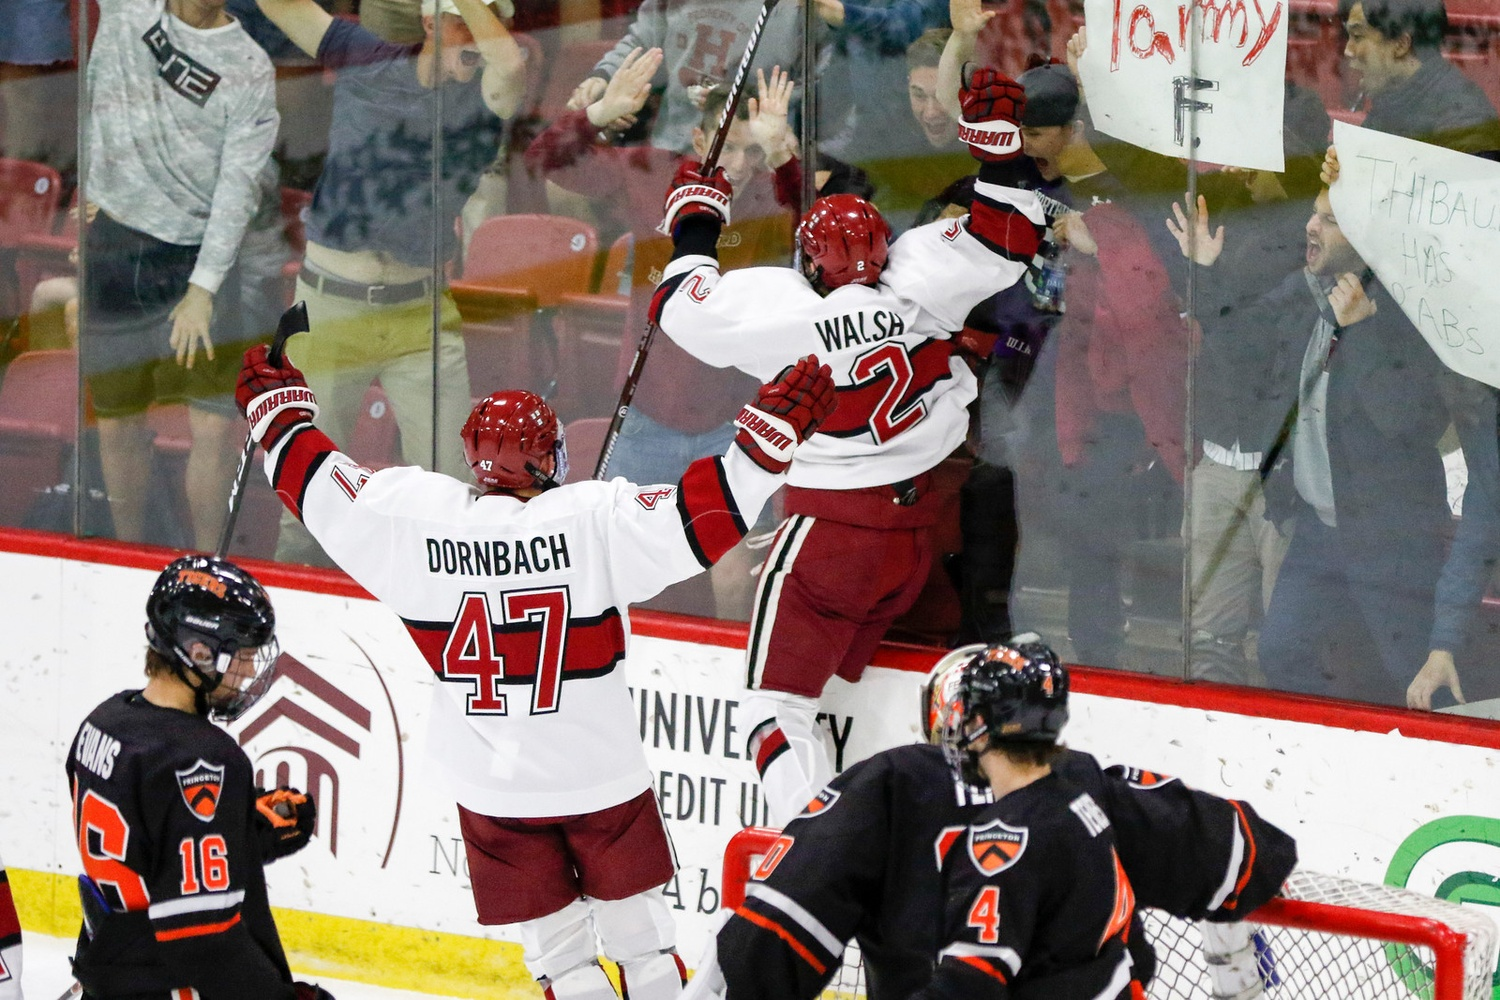 Sophomore defenseman Reilly Walsh's point-shot powerplay goal was ultimately awarded to freshman Jack Drury, whom the puck skimmed on the way into the net.